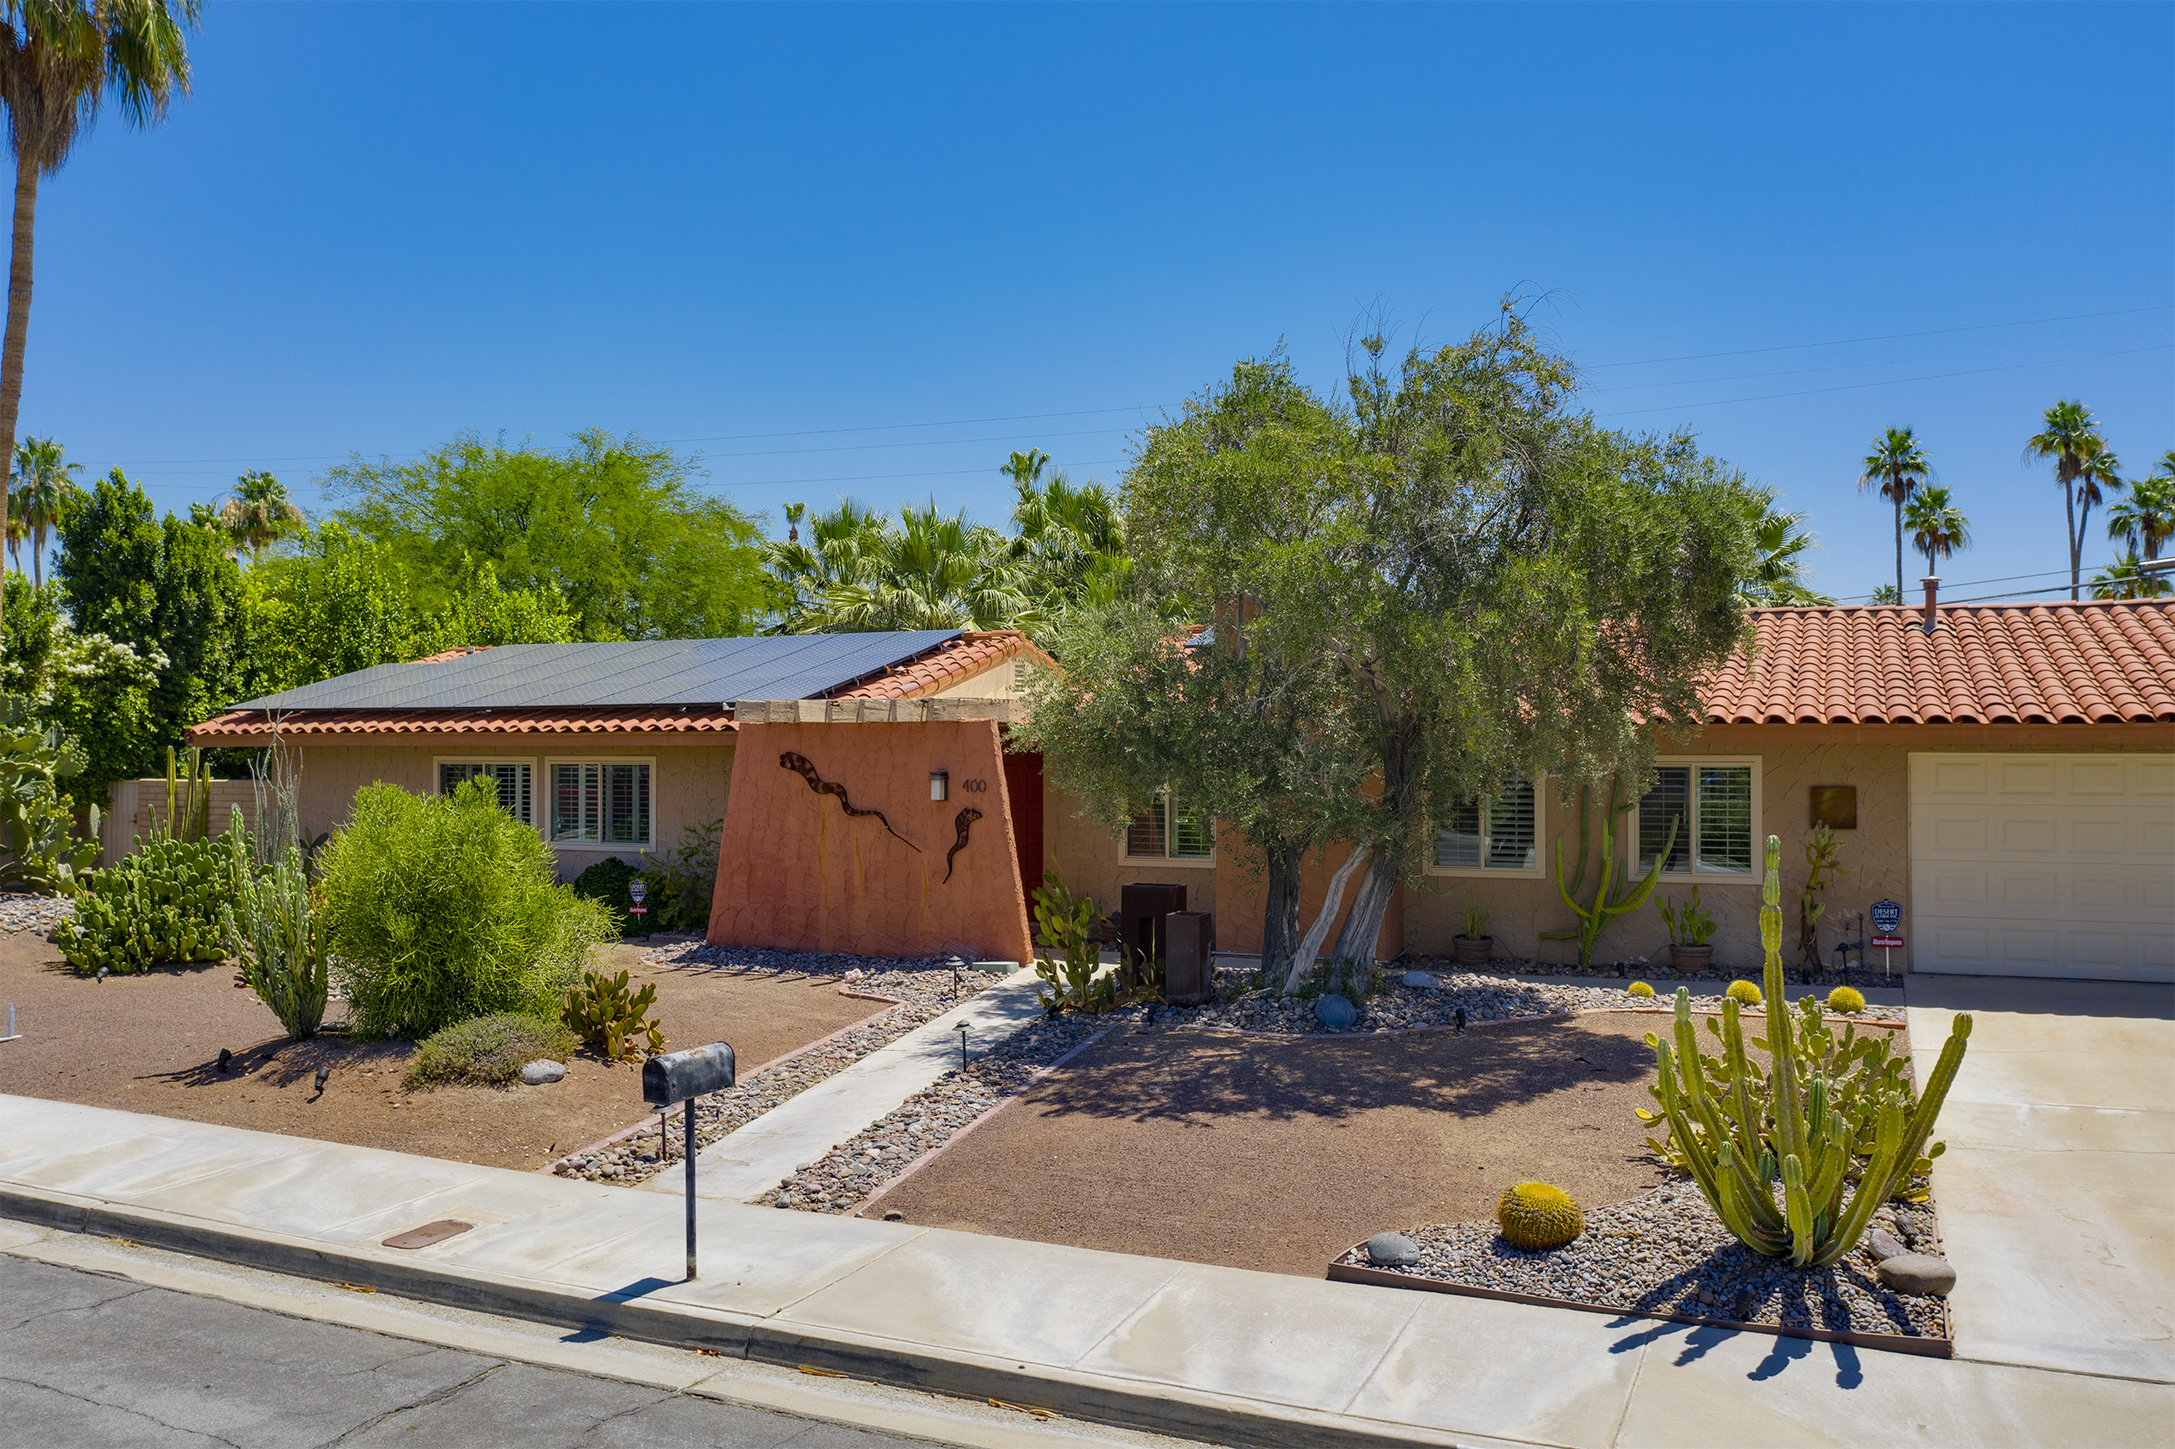 400 N. Orchid Tree Lane, Palm Springs, CA 92262